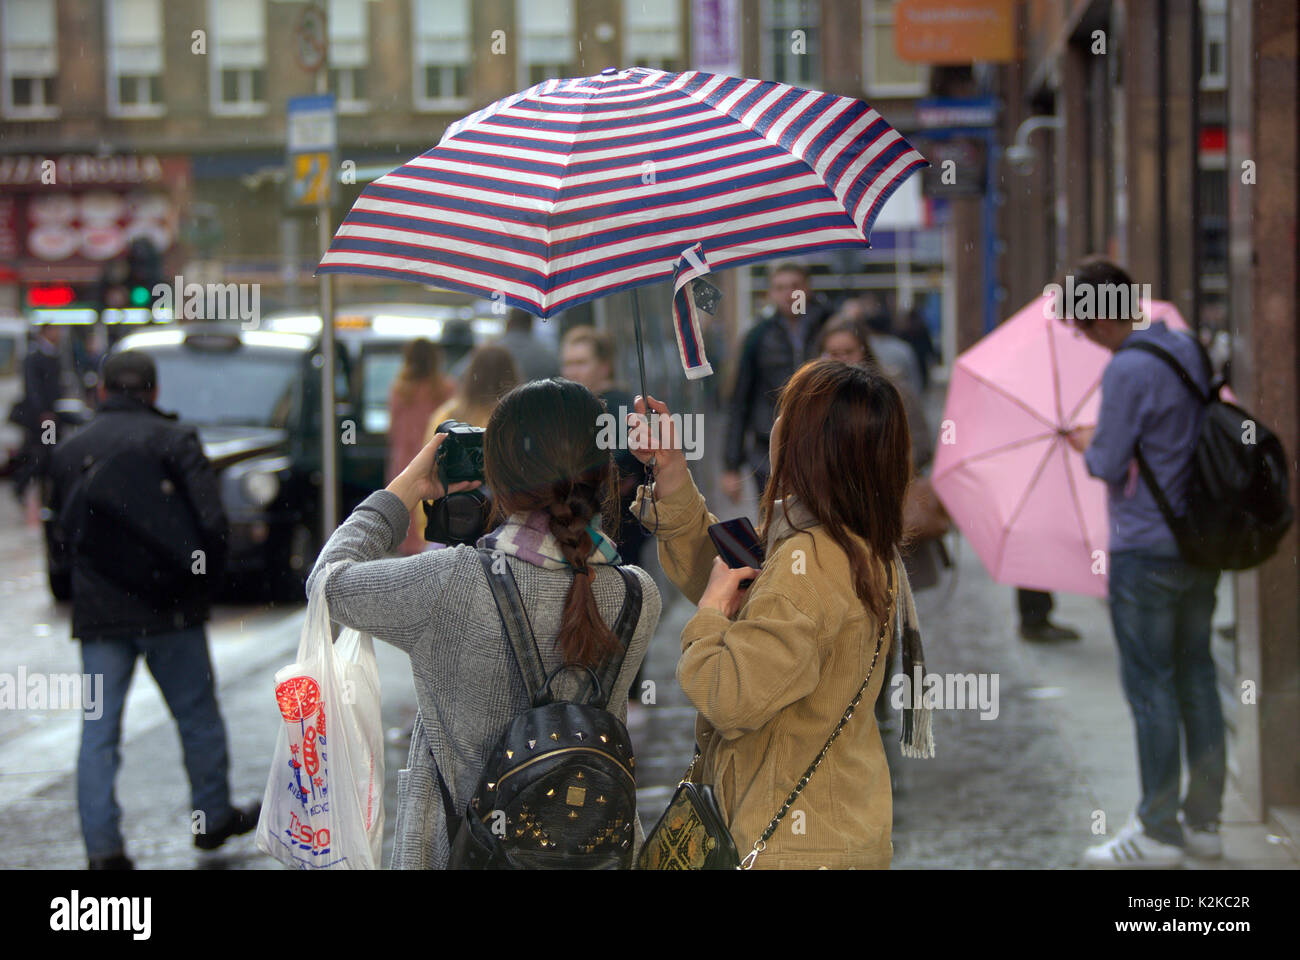 Glasgow, Scotland, UK. 30th Aug, 2017. UK Weather. Raining and sunny on the streets of the city often at the same tine as its poor summer weather continues. tourists marvel and take pictures of Sleet in summer outside central station. Credit: gerard ferry/Alamy Live News - Stock Image